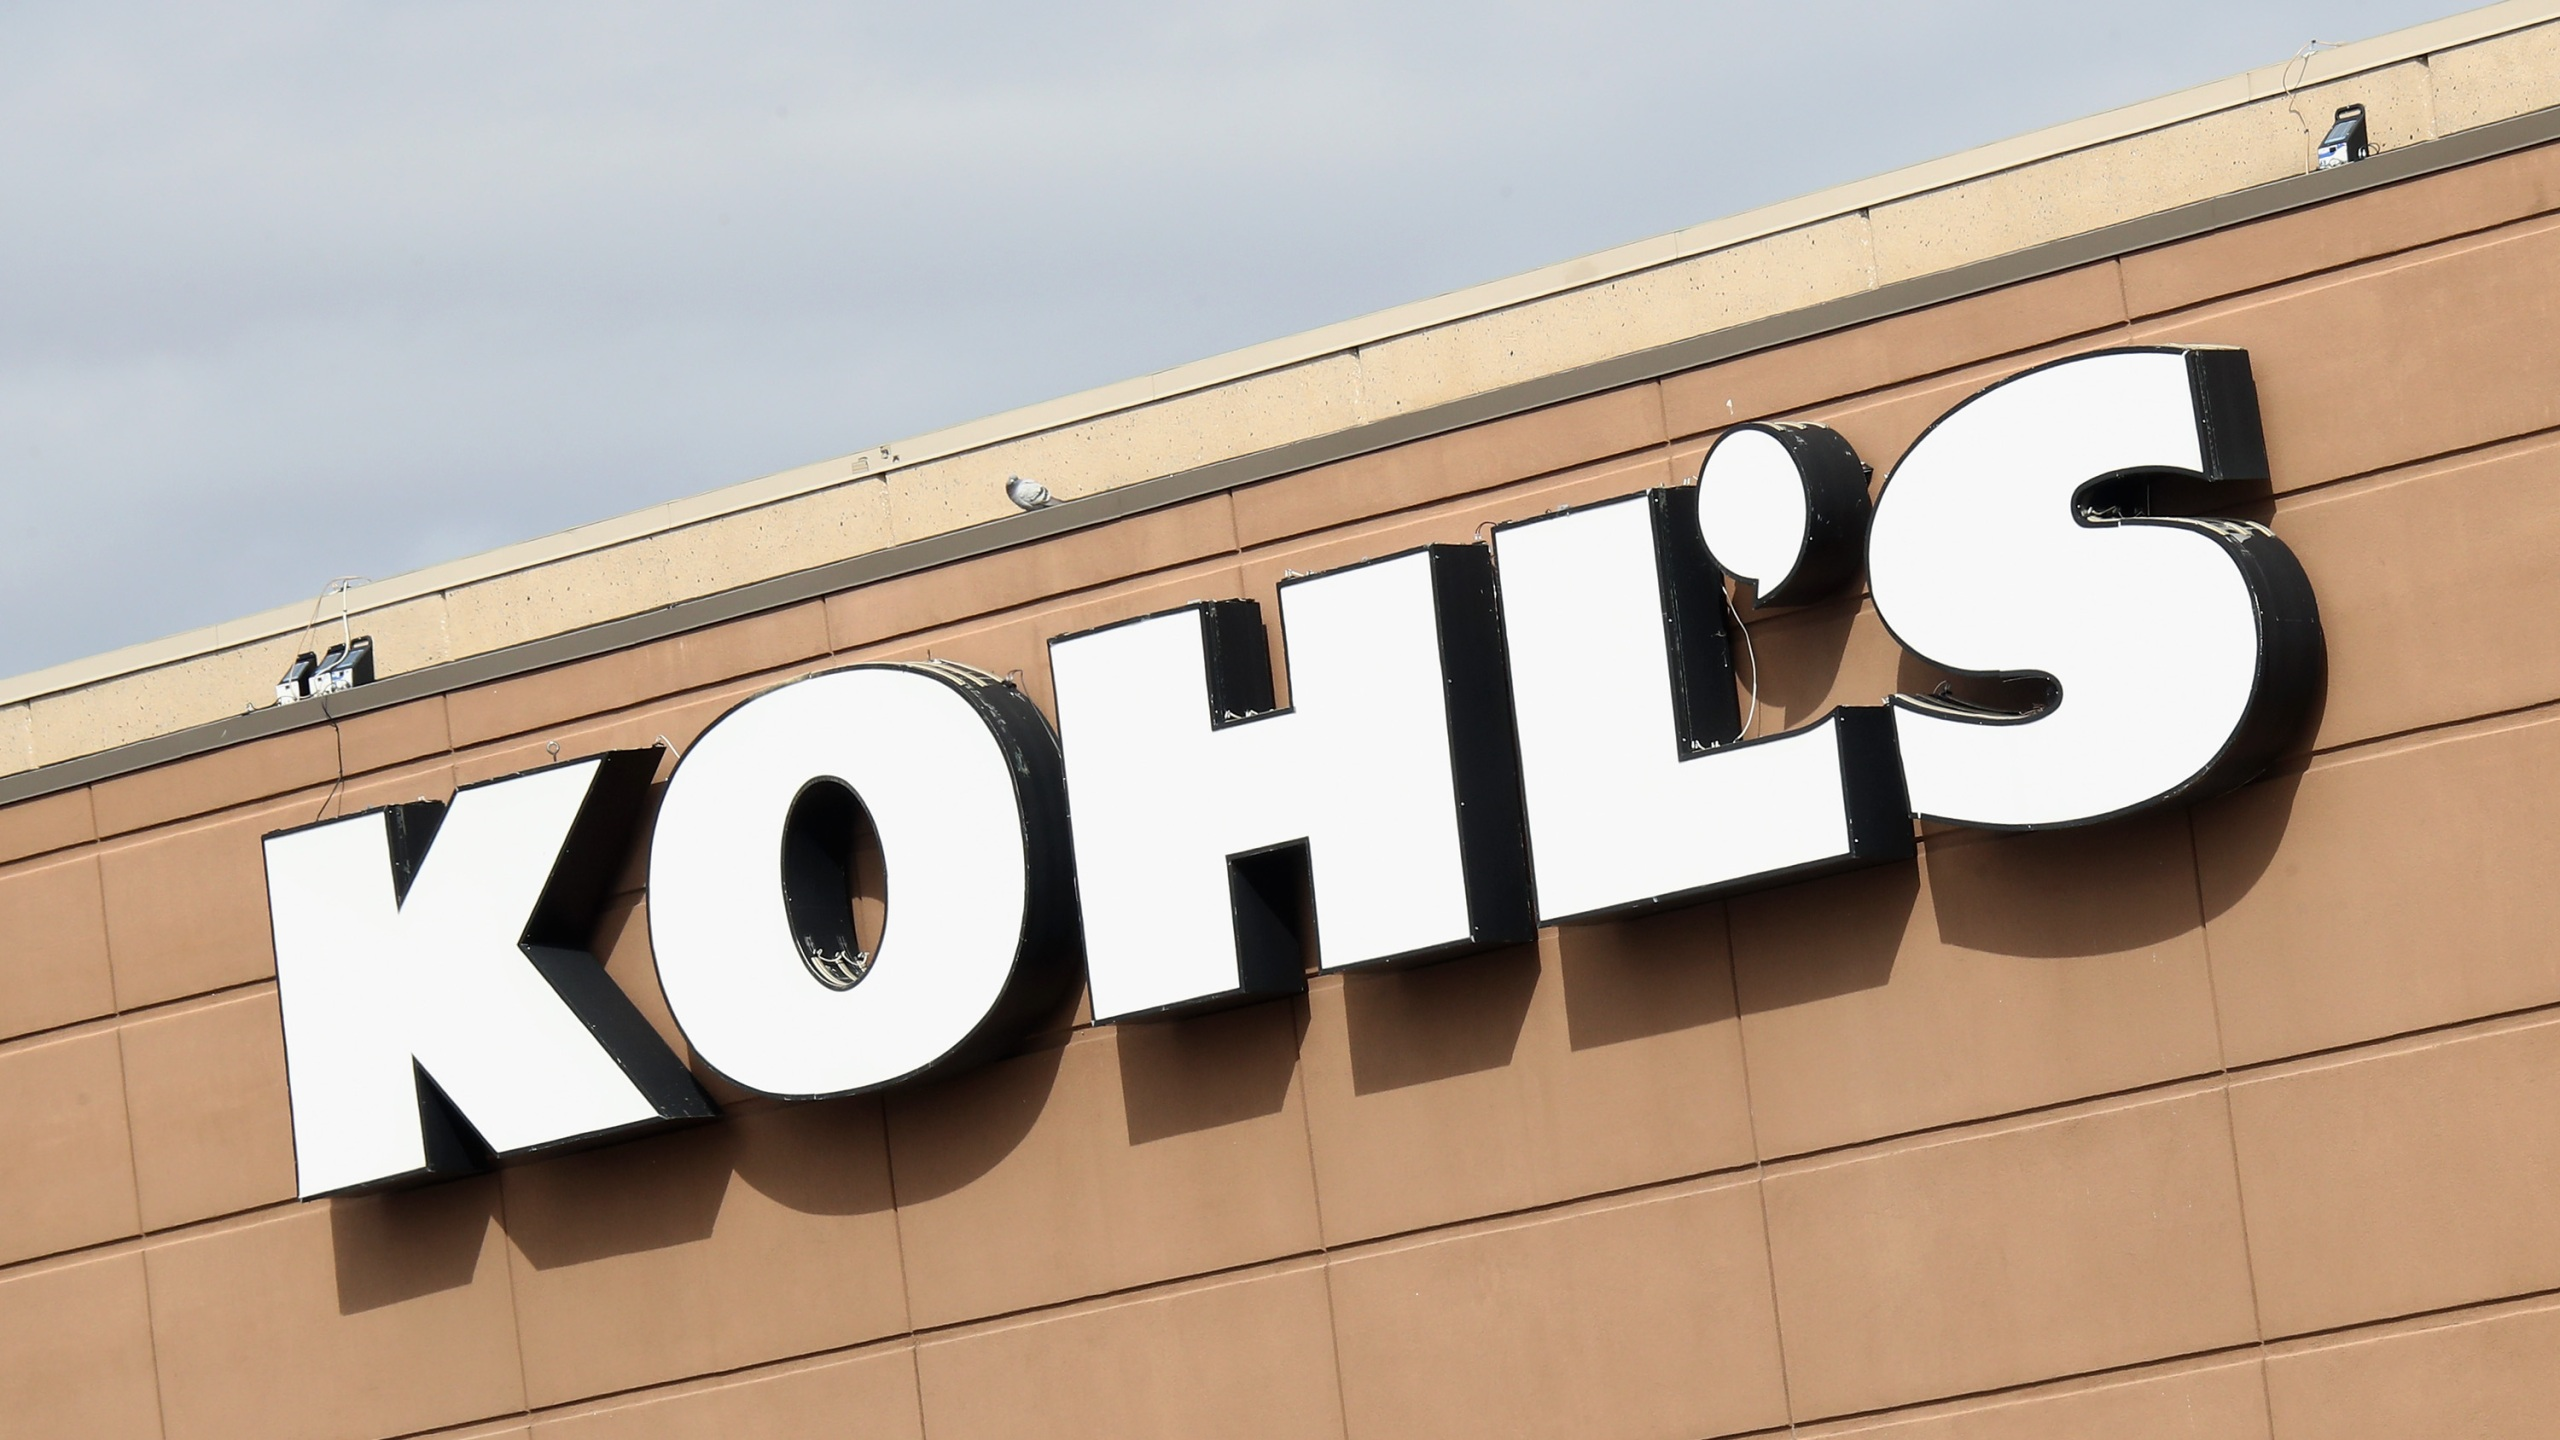 An image of the sign for Kohl's as photographed on March 16, 2020 in Levittown, New York. (Bruce Bennett/Getty Images)